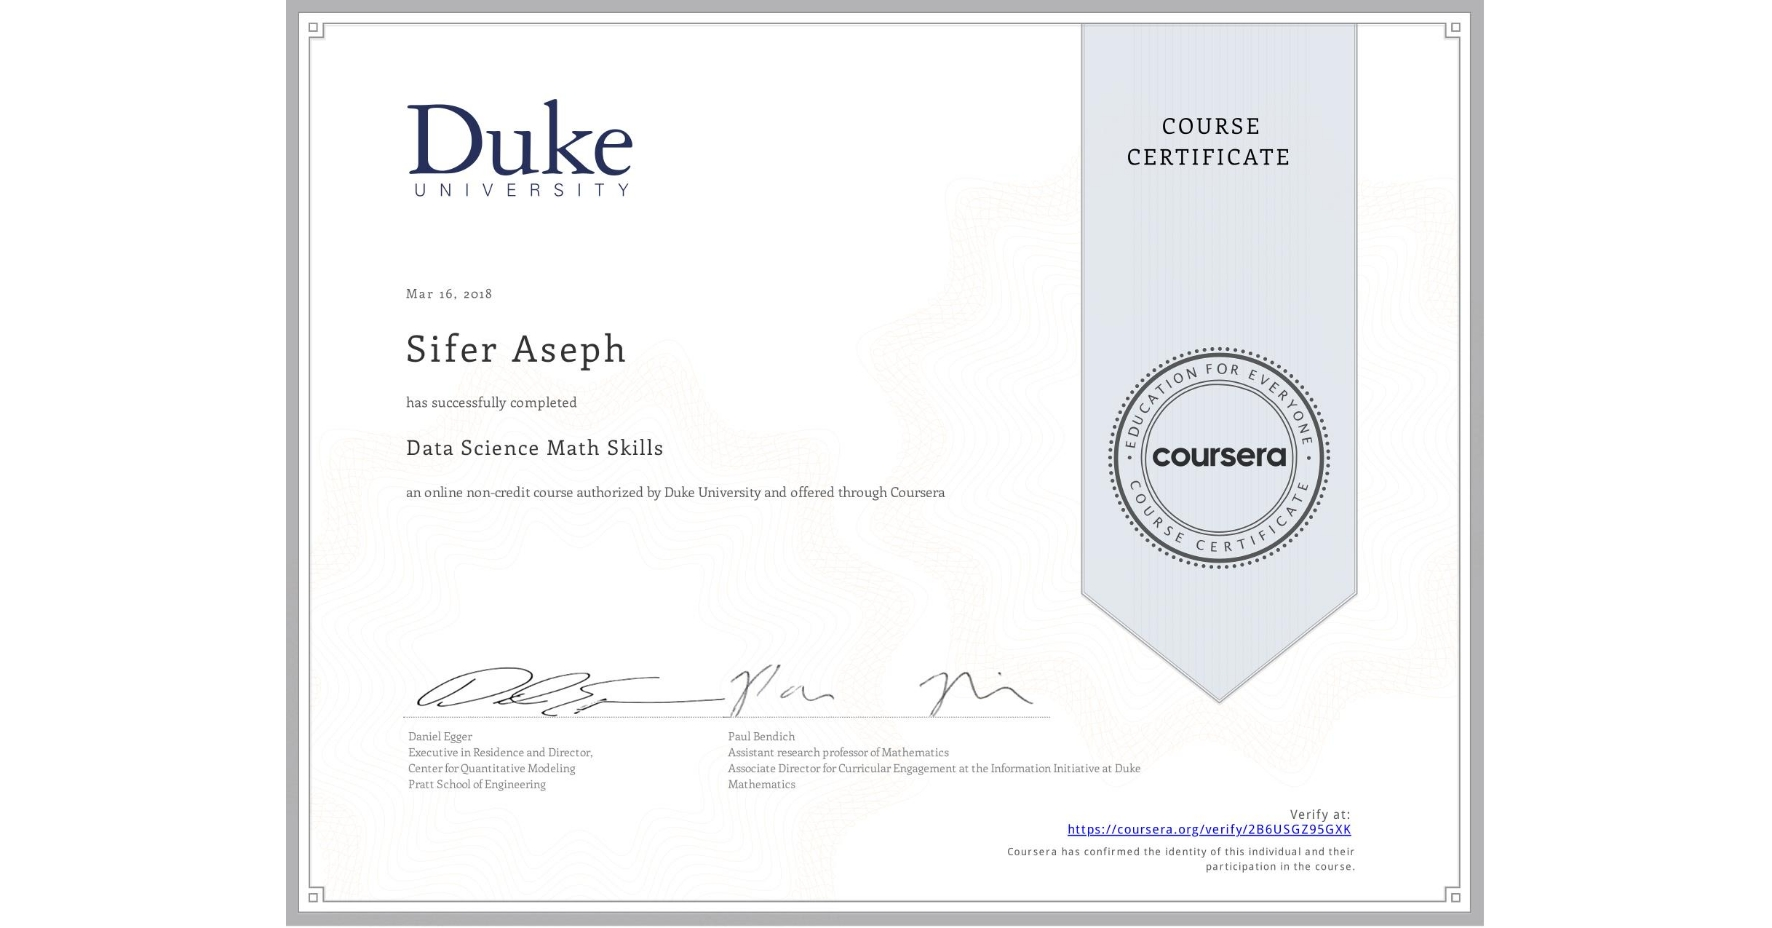 View certificate for Sifer Aseph, Data Science Math Skills, an online non-credit course authorized by Duke University and offered through Coursera